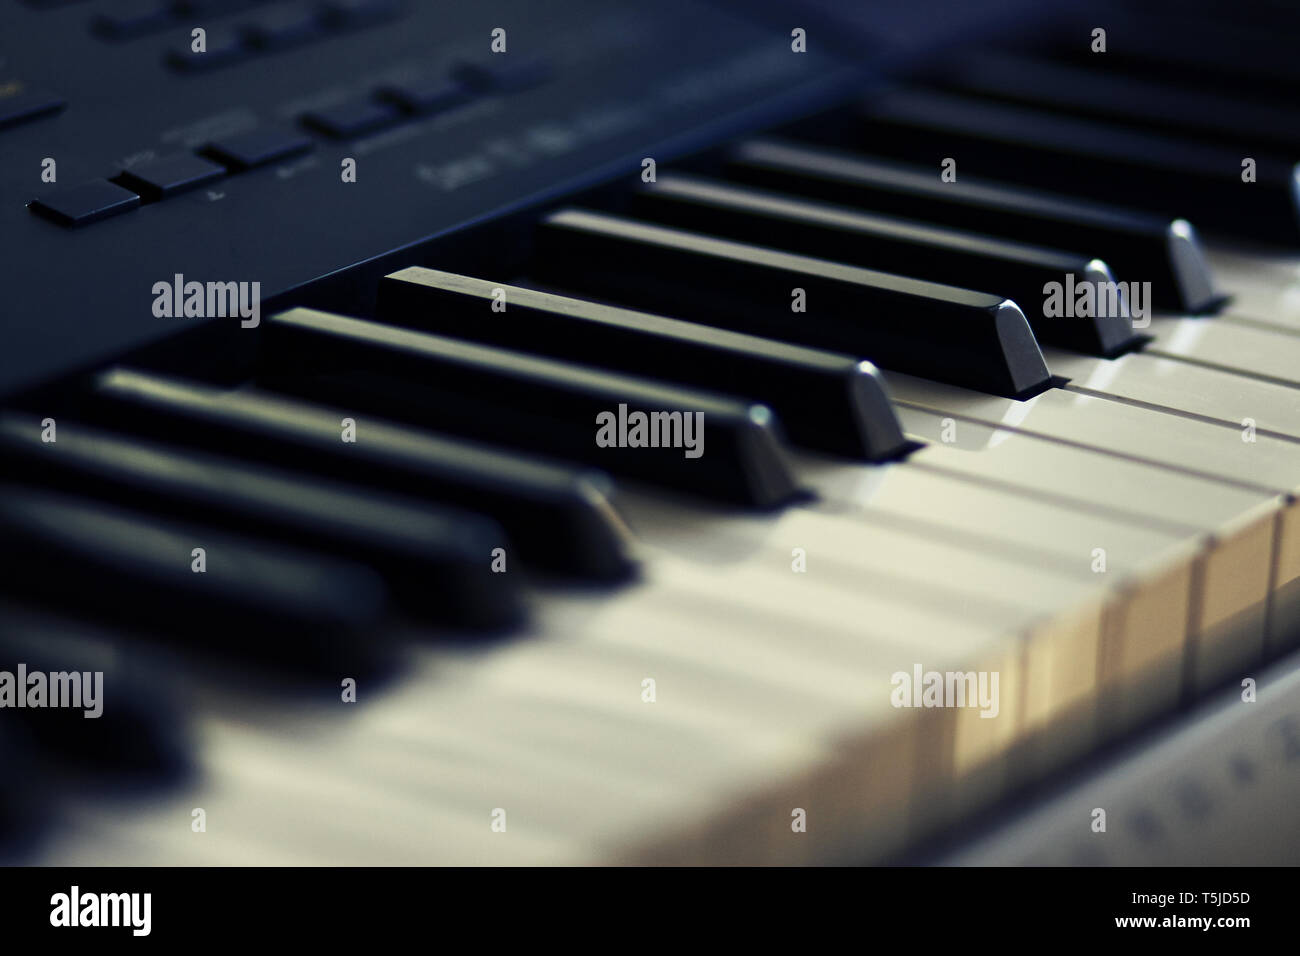 Black and white keys of modern musical instrument-synthesizer, with which you can play different melodies - Stock Image